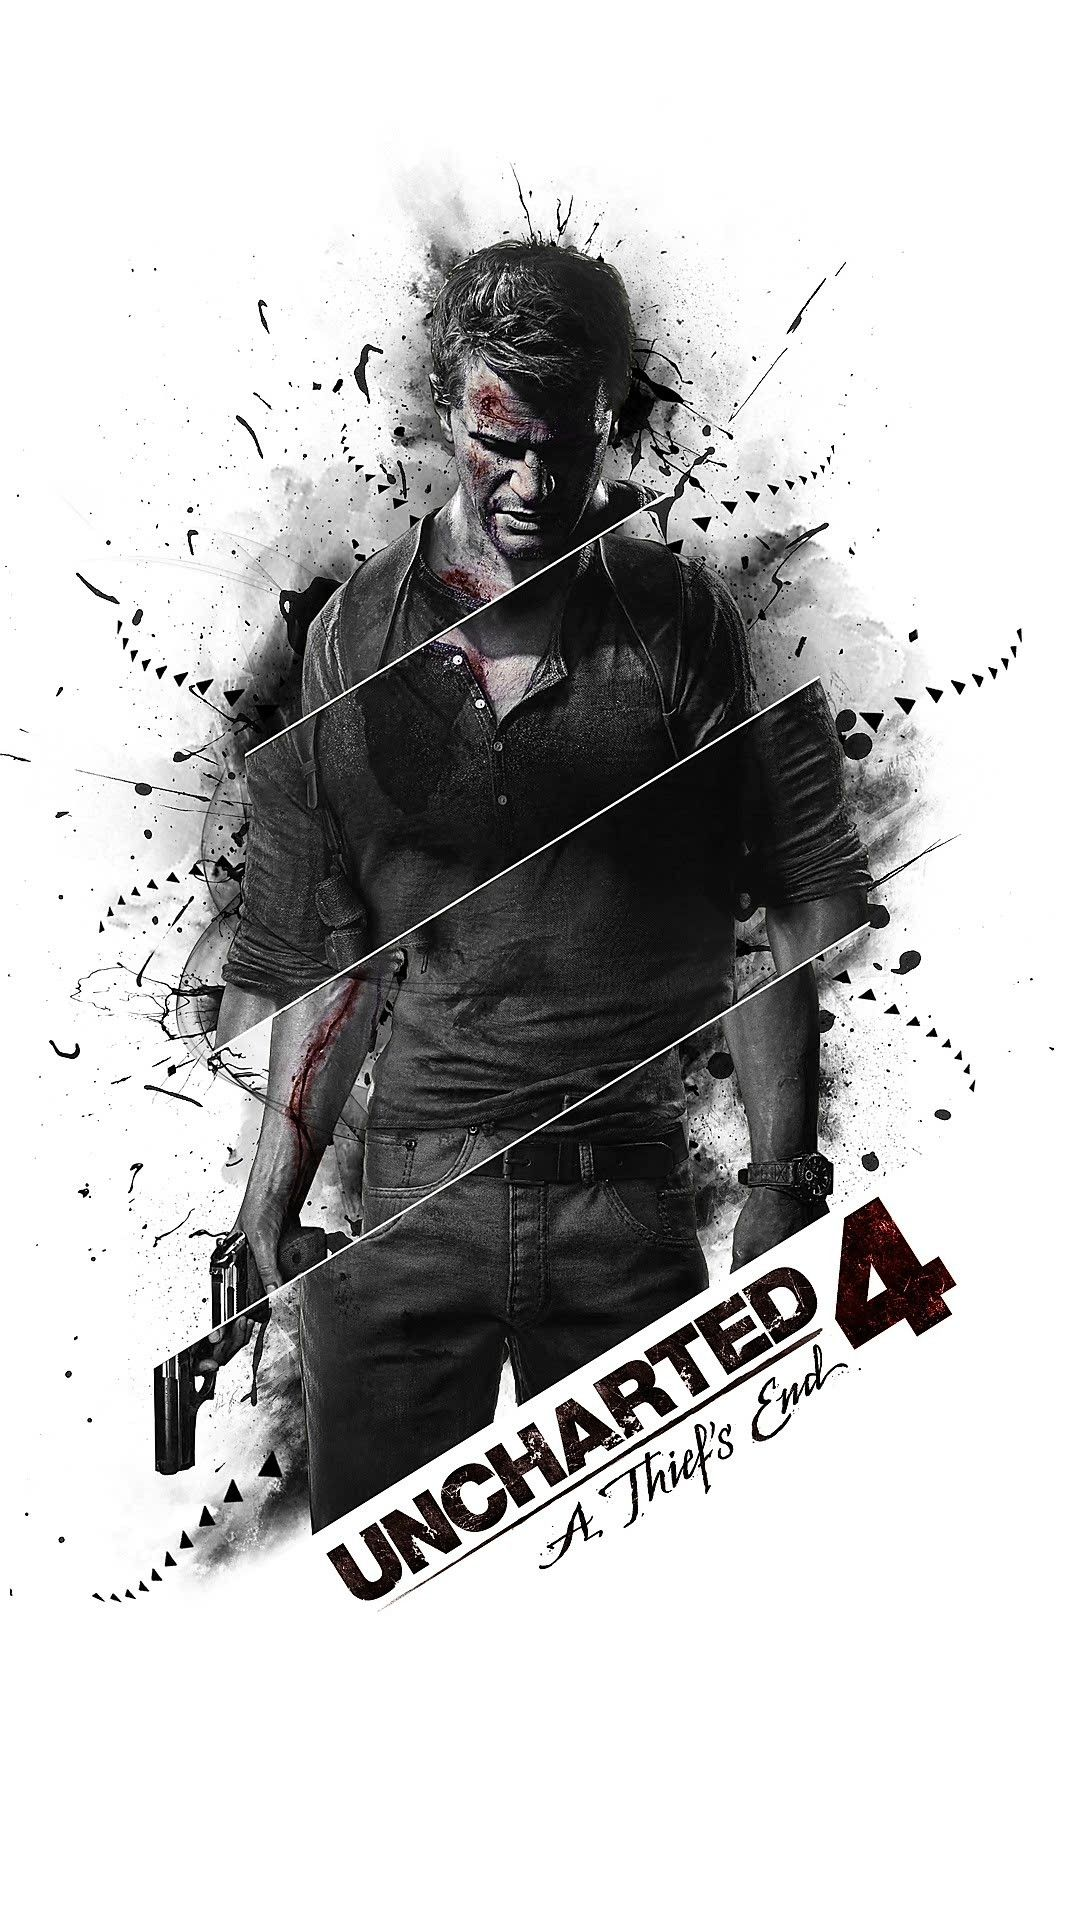 Uncharted 4 wallpaper gaming uncharted drake ps4 - Uncharted 4 wallpaper ps4 ...